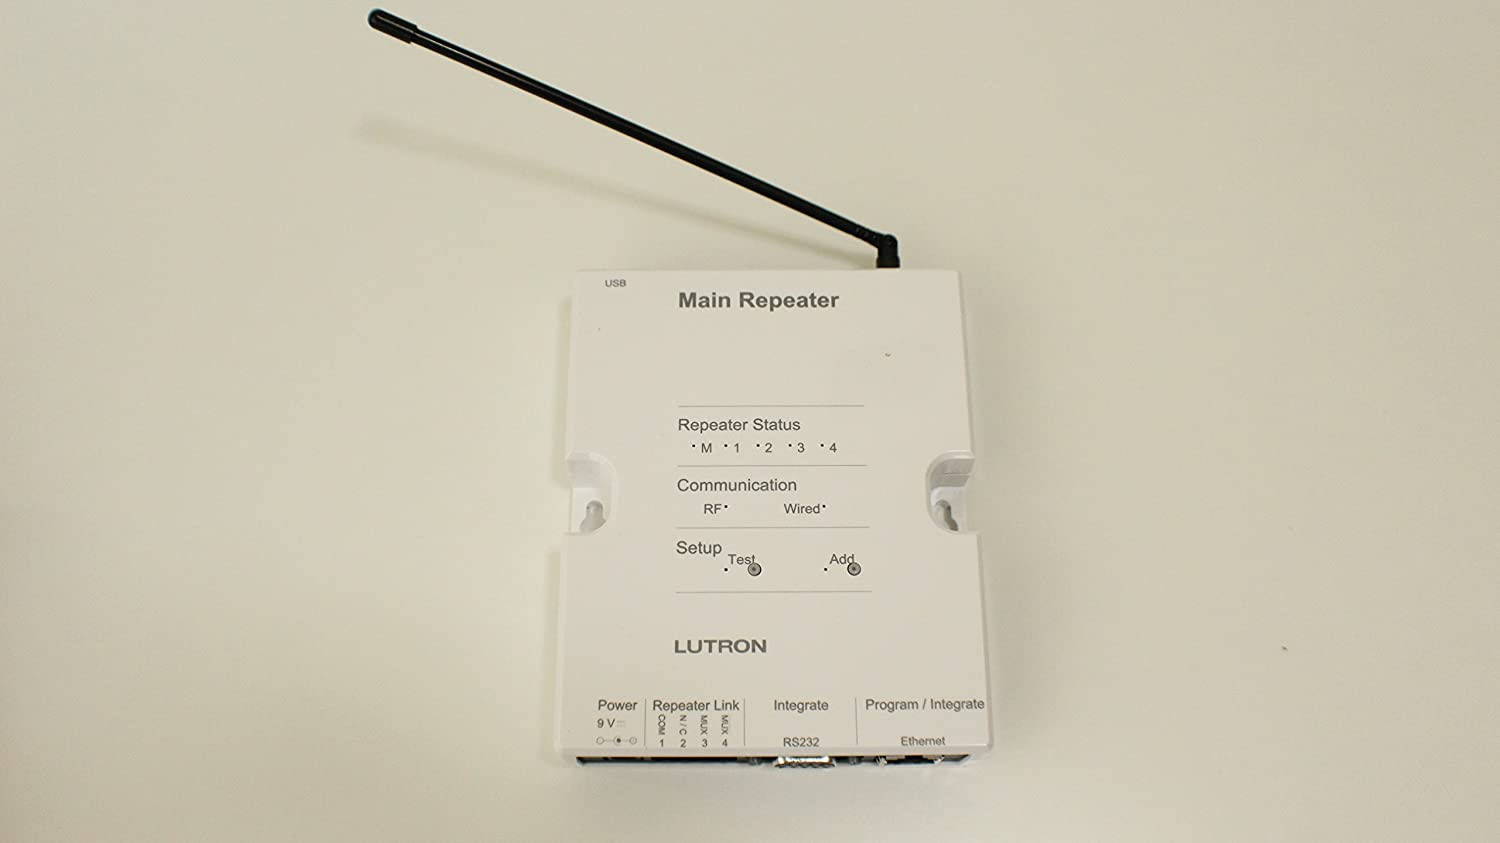 Lutron Rr Main Rep Wh Standard Switches Electronics Shade Wiring Diagrams